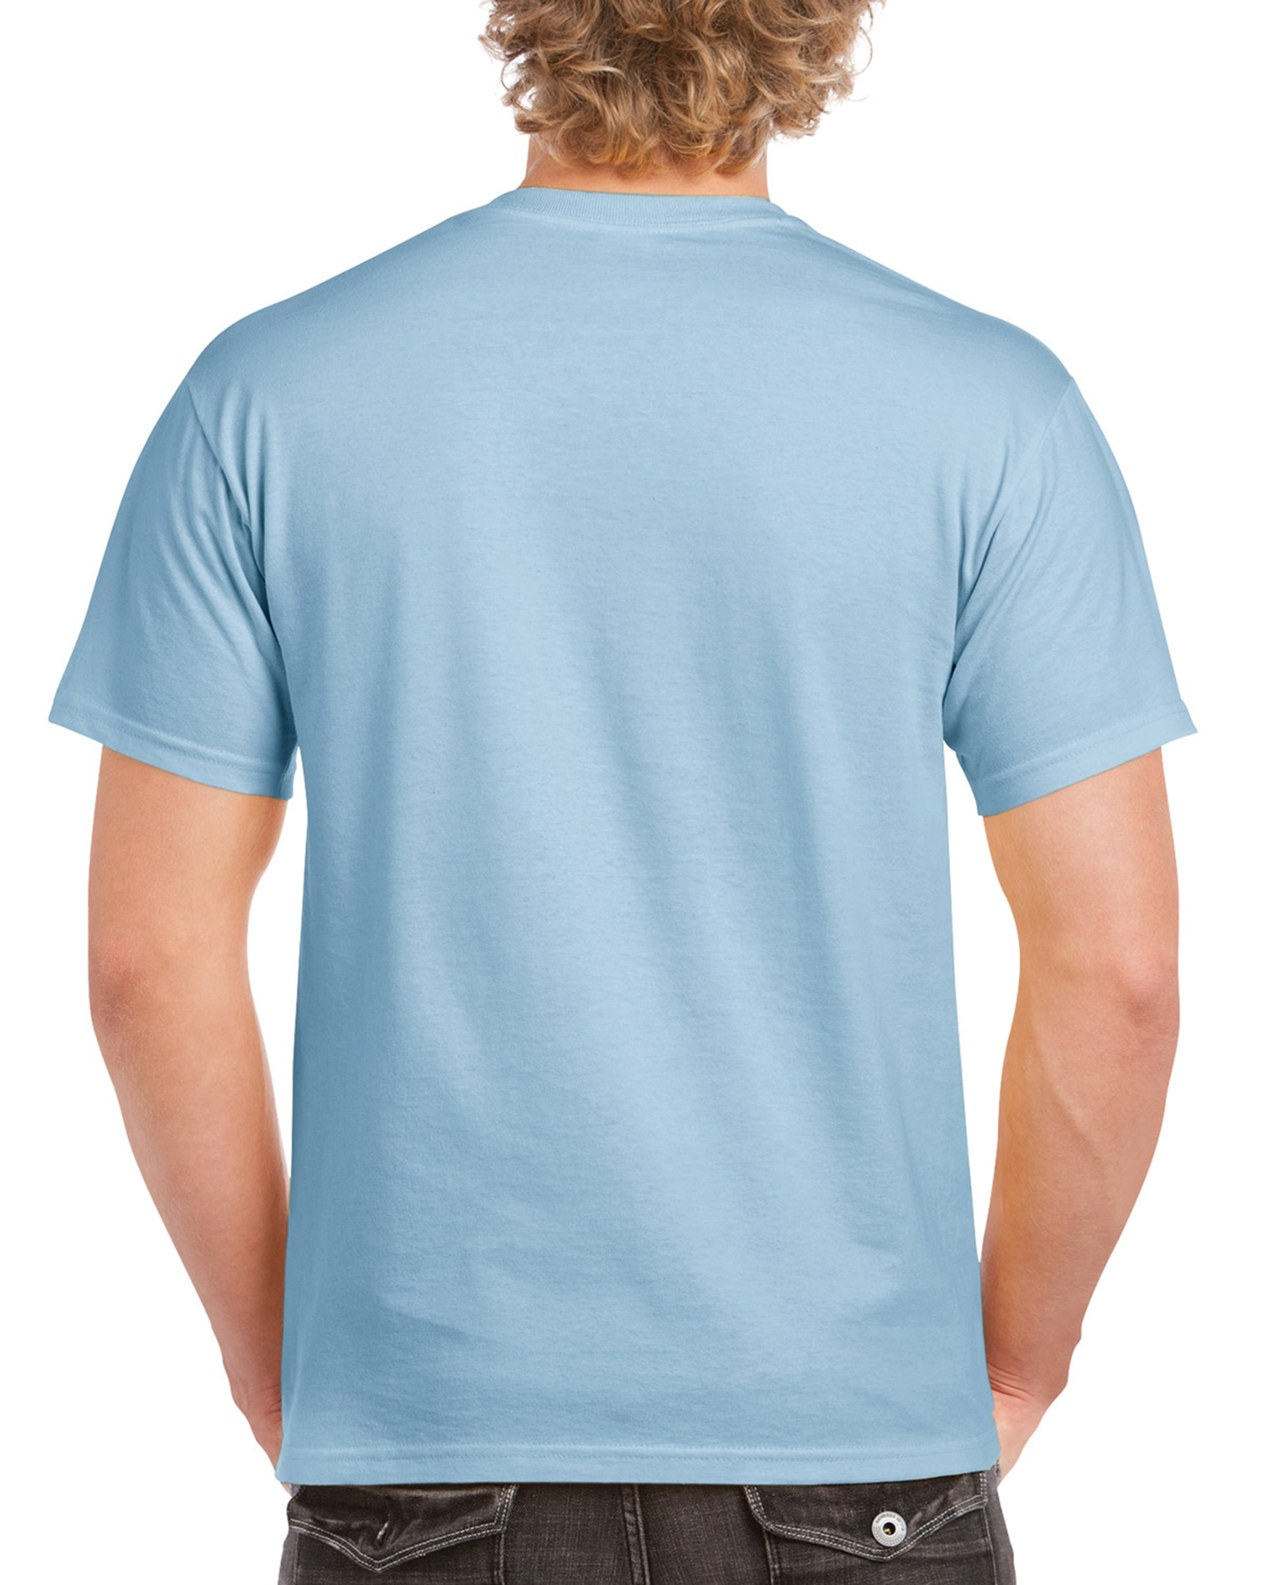 5000 adult t shirt light blue %281%29